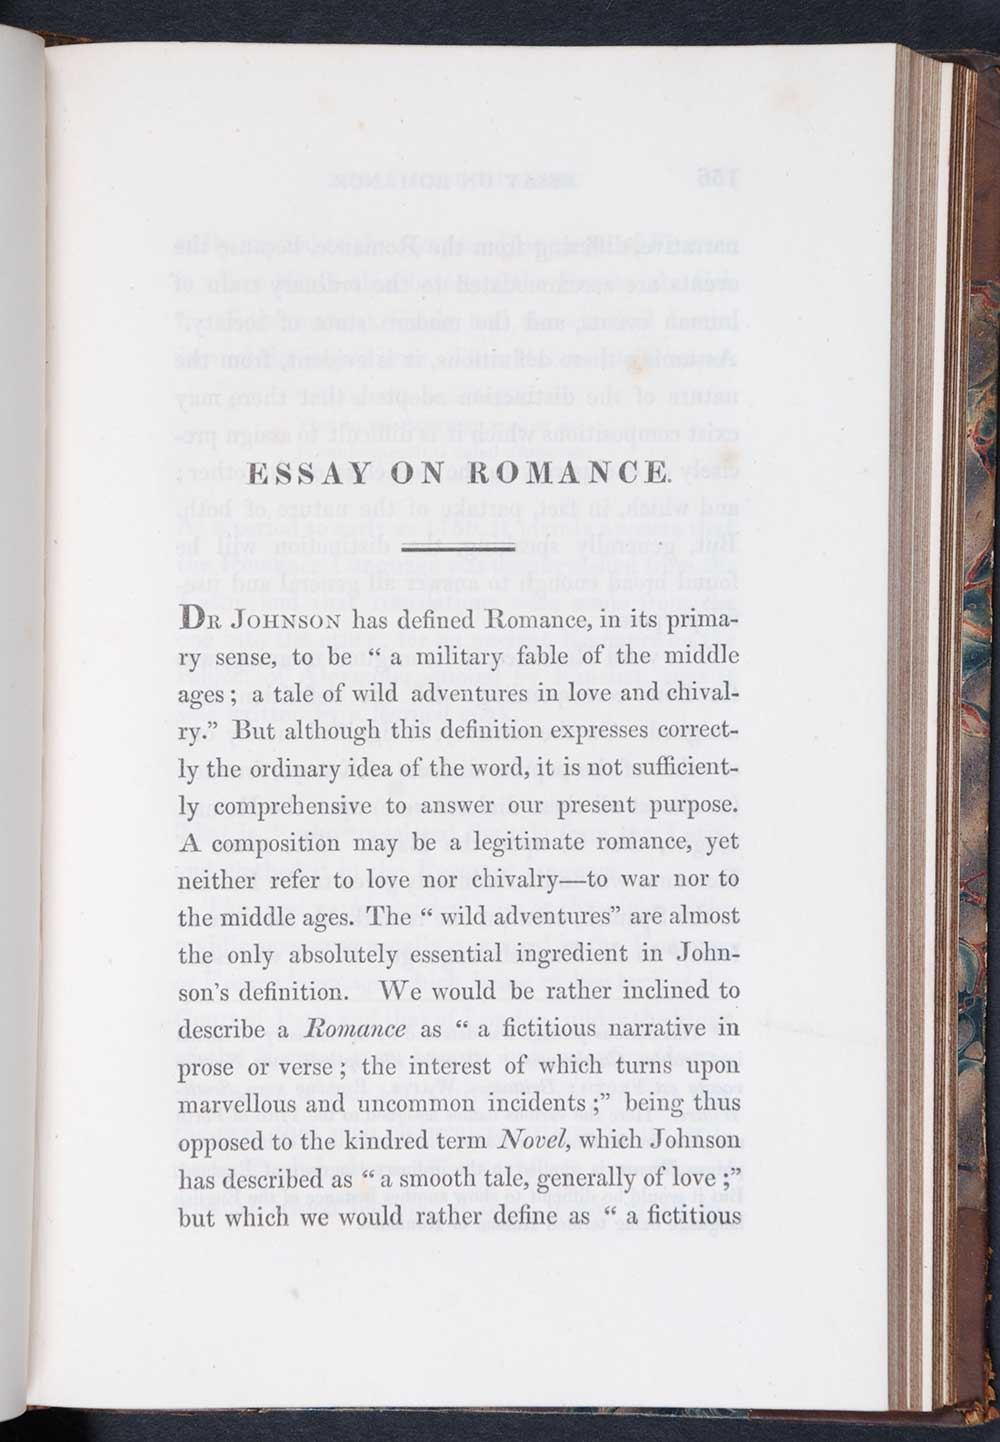 essay romance walter scott Buy essays on chivalry, romance, and the drama by walter scott (isbn: ) from amazon's book store everyday low prices and free delivery on eligible orders.